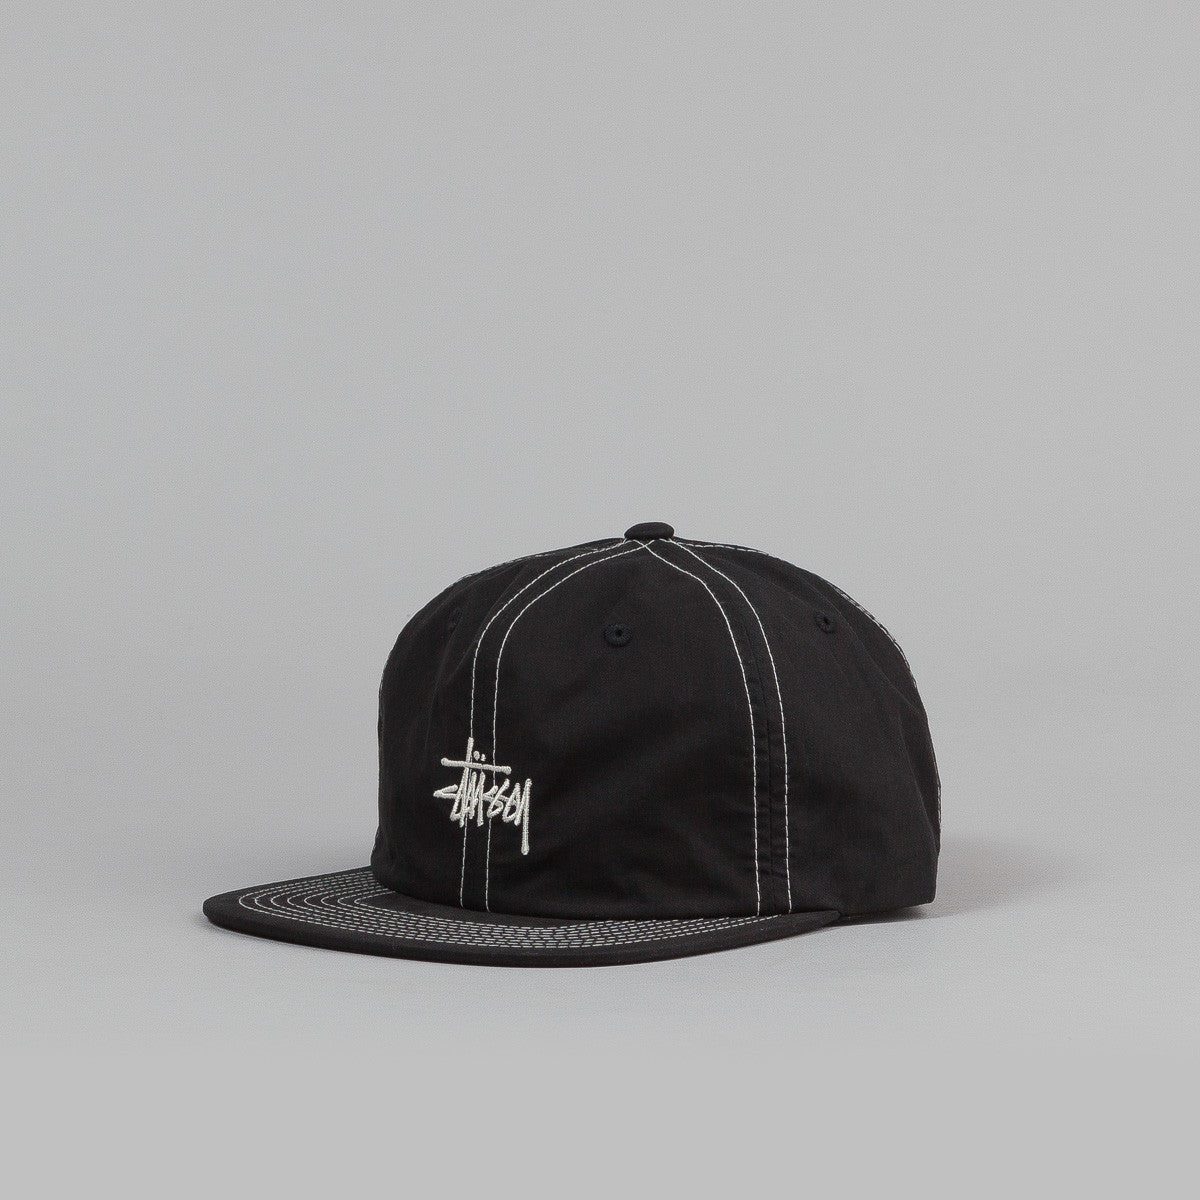 Stussy Contrast Stitched Strapback Cap